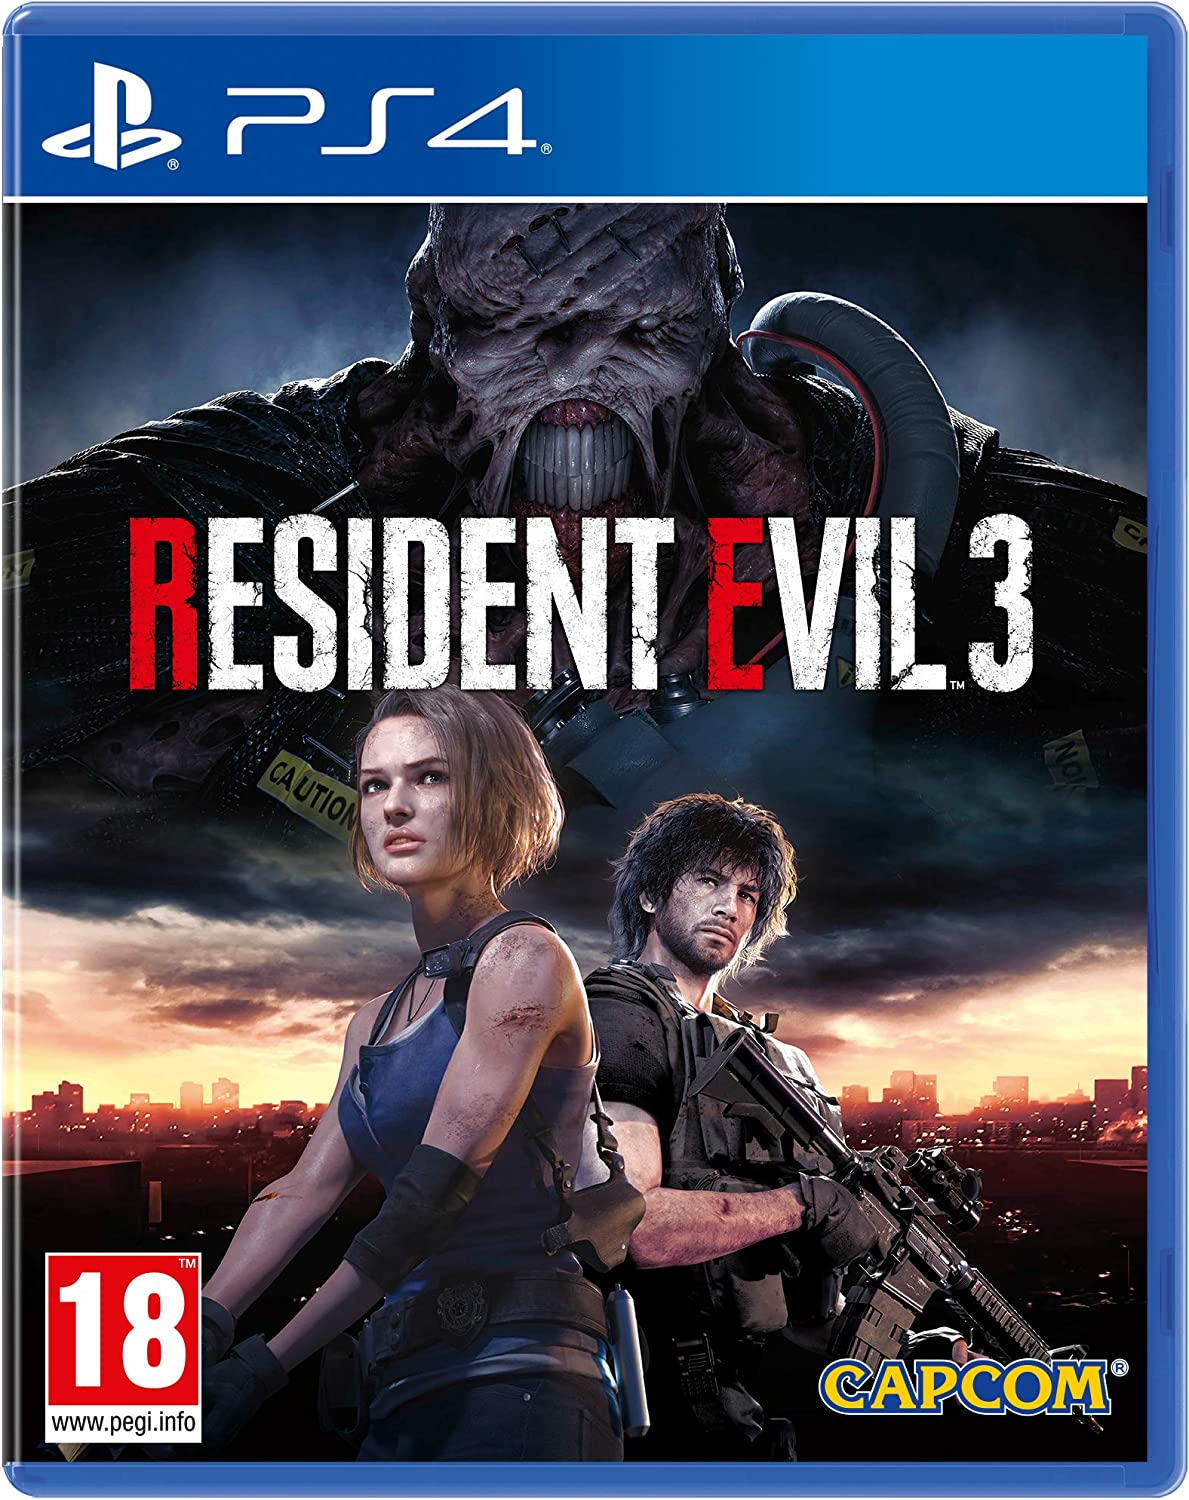 Resident Evil 3 Remake - PS4: Amazon.es: Videojuegos